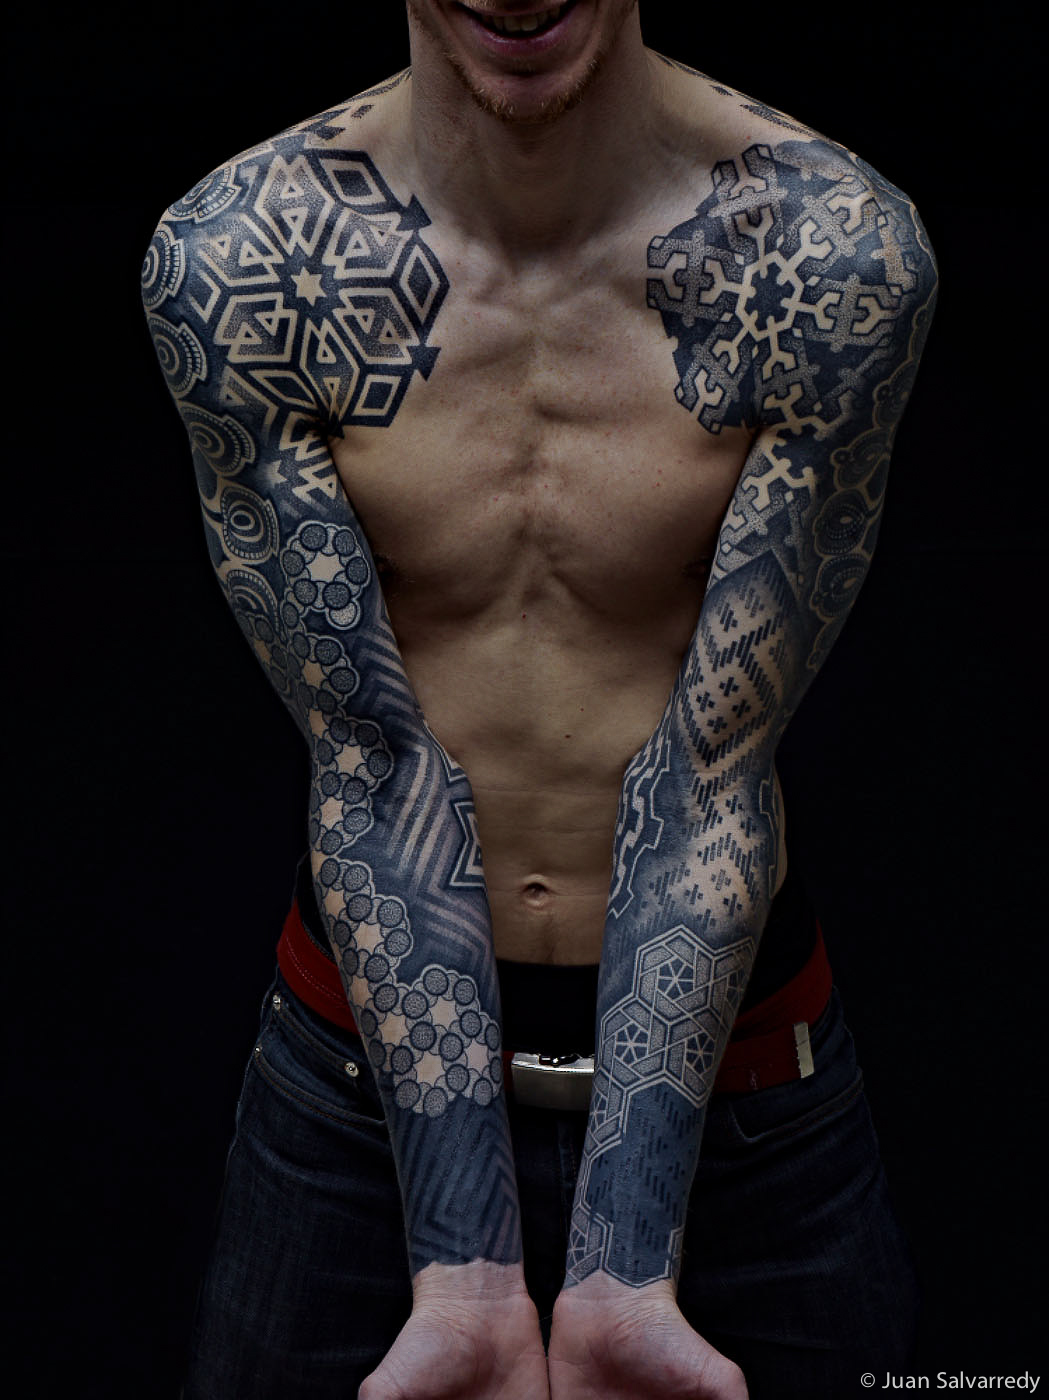 Arm tattoo designs meaning tattooing pictures for All tattoos pictures